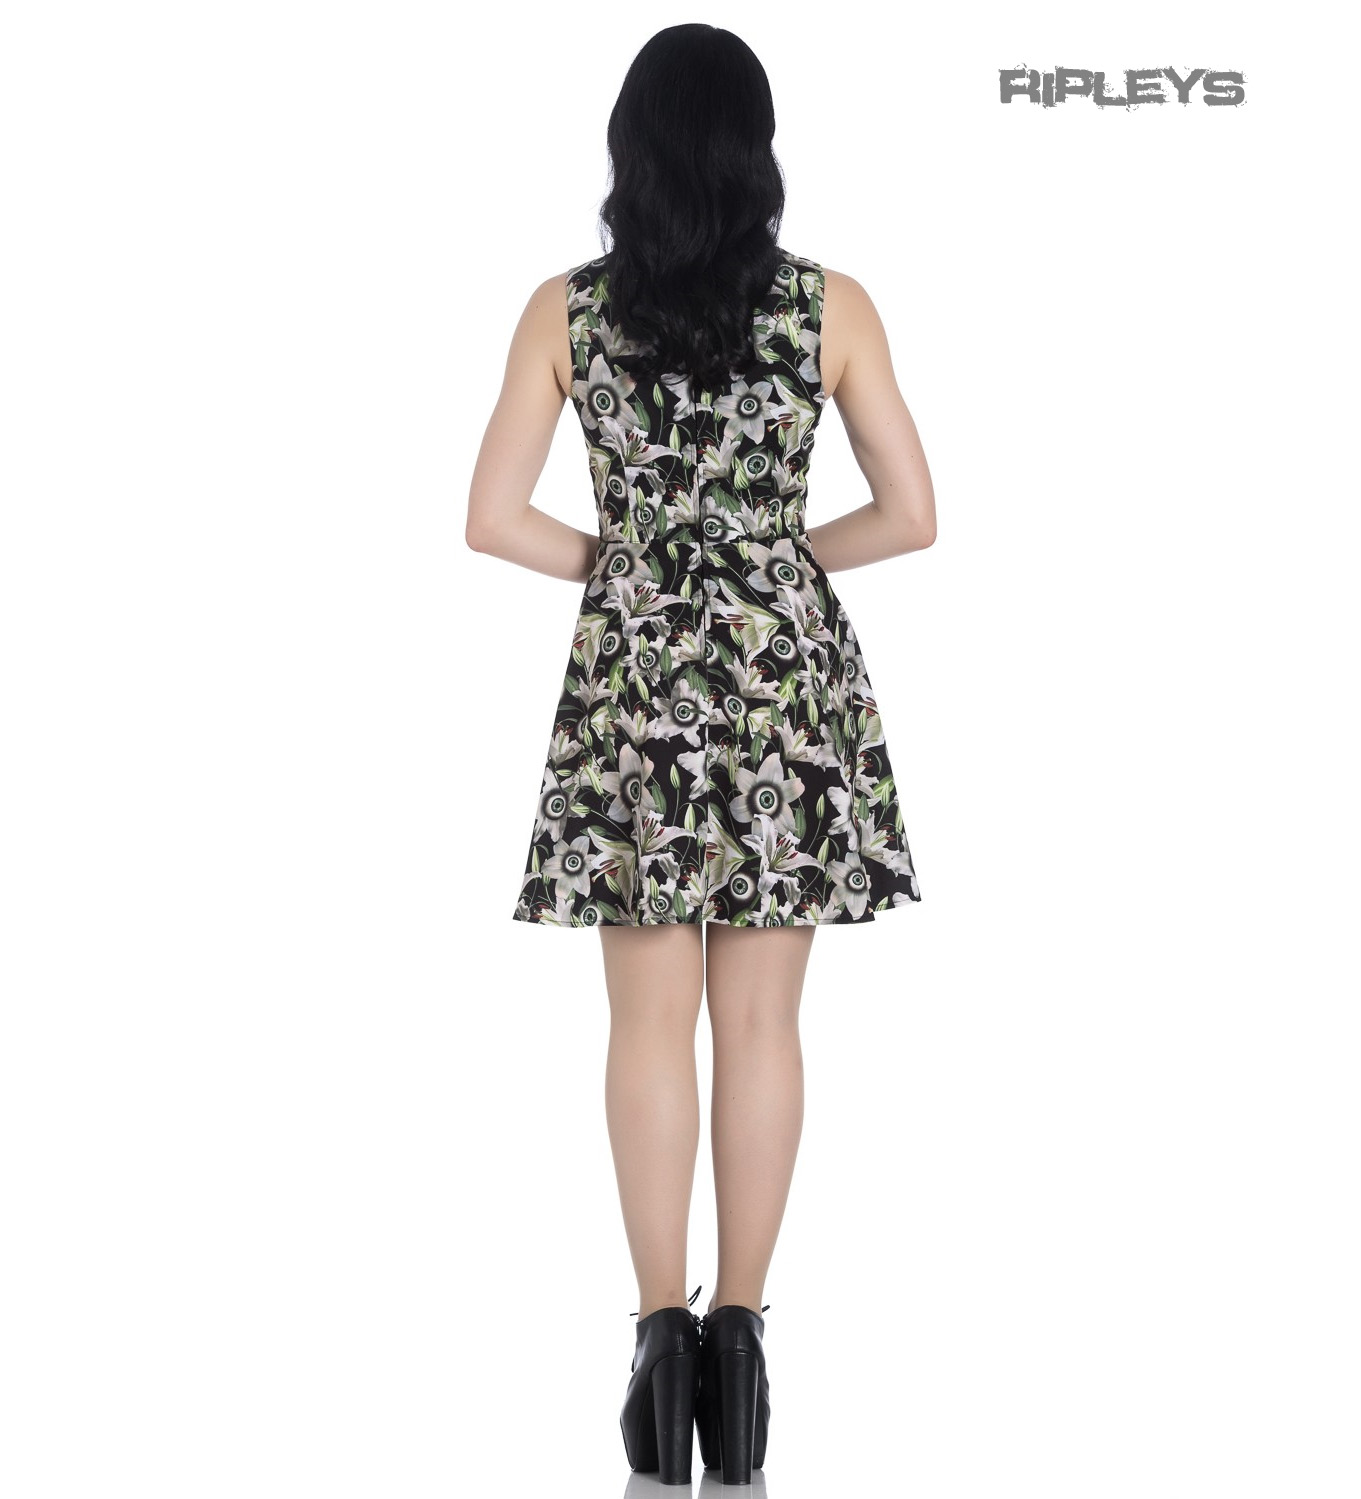 Hell-Bunny-Black-Lace-Up-Goth-Punk-Mini-Dress-PEEPERS-Eyeballs-Flowers-All-Sizes thumbnail 48